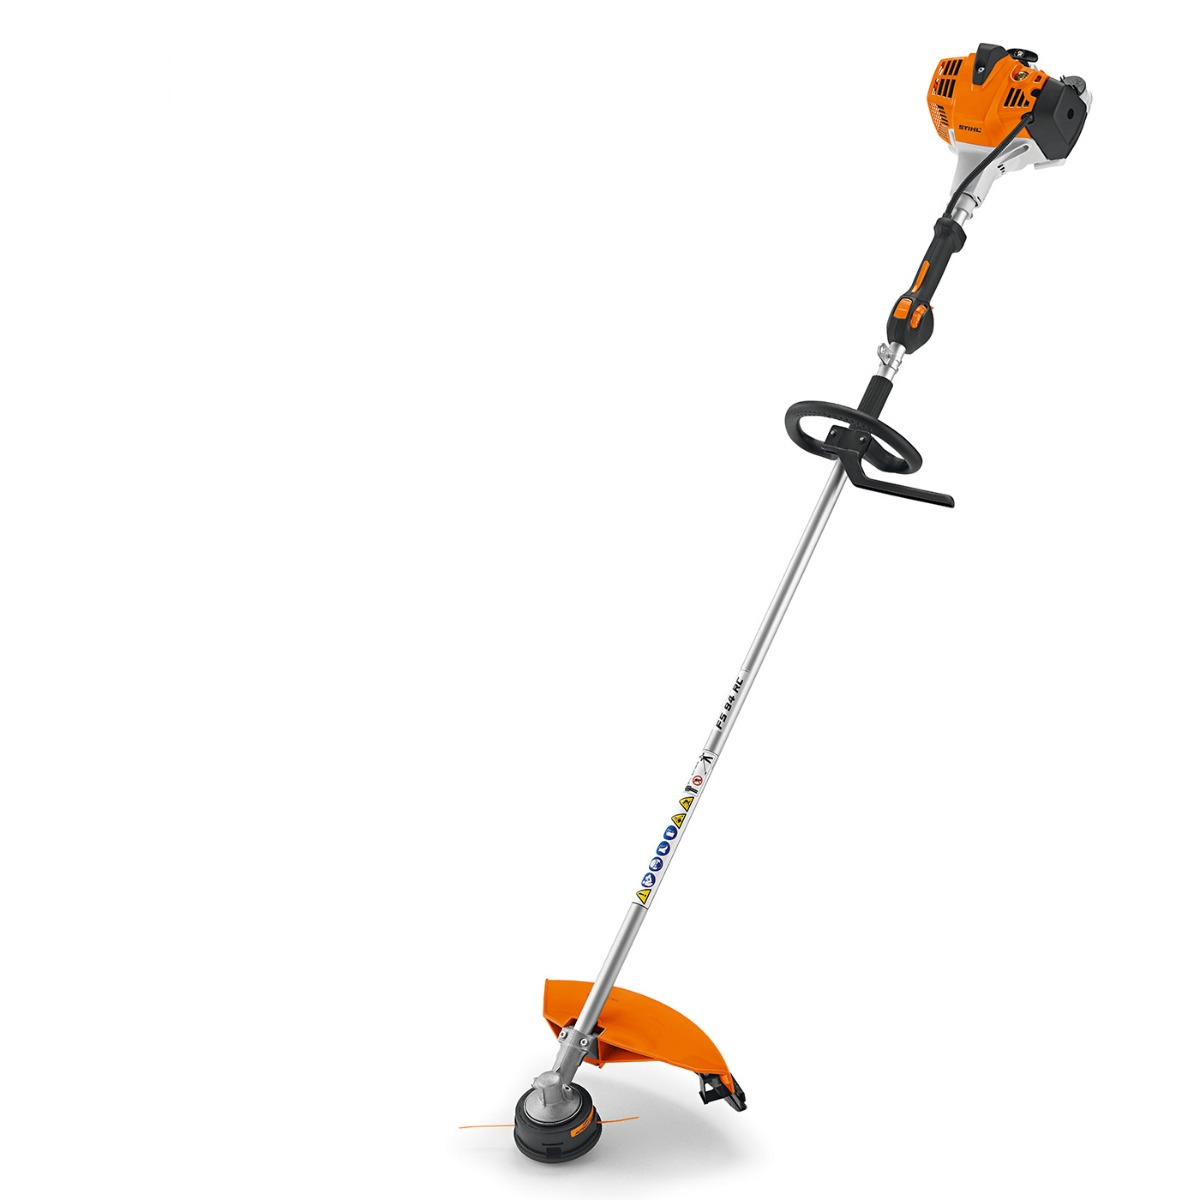 STIHL FS 94 RC-E PETROL LINE TRIMMER